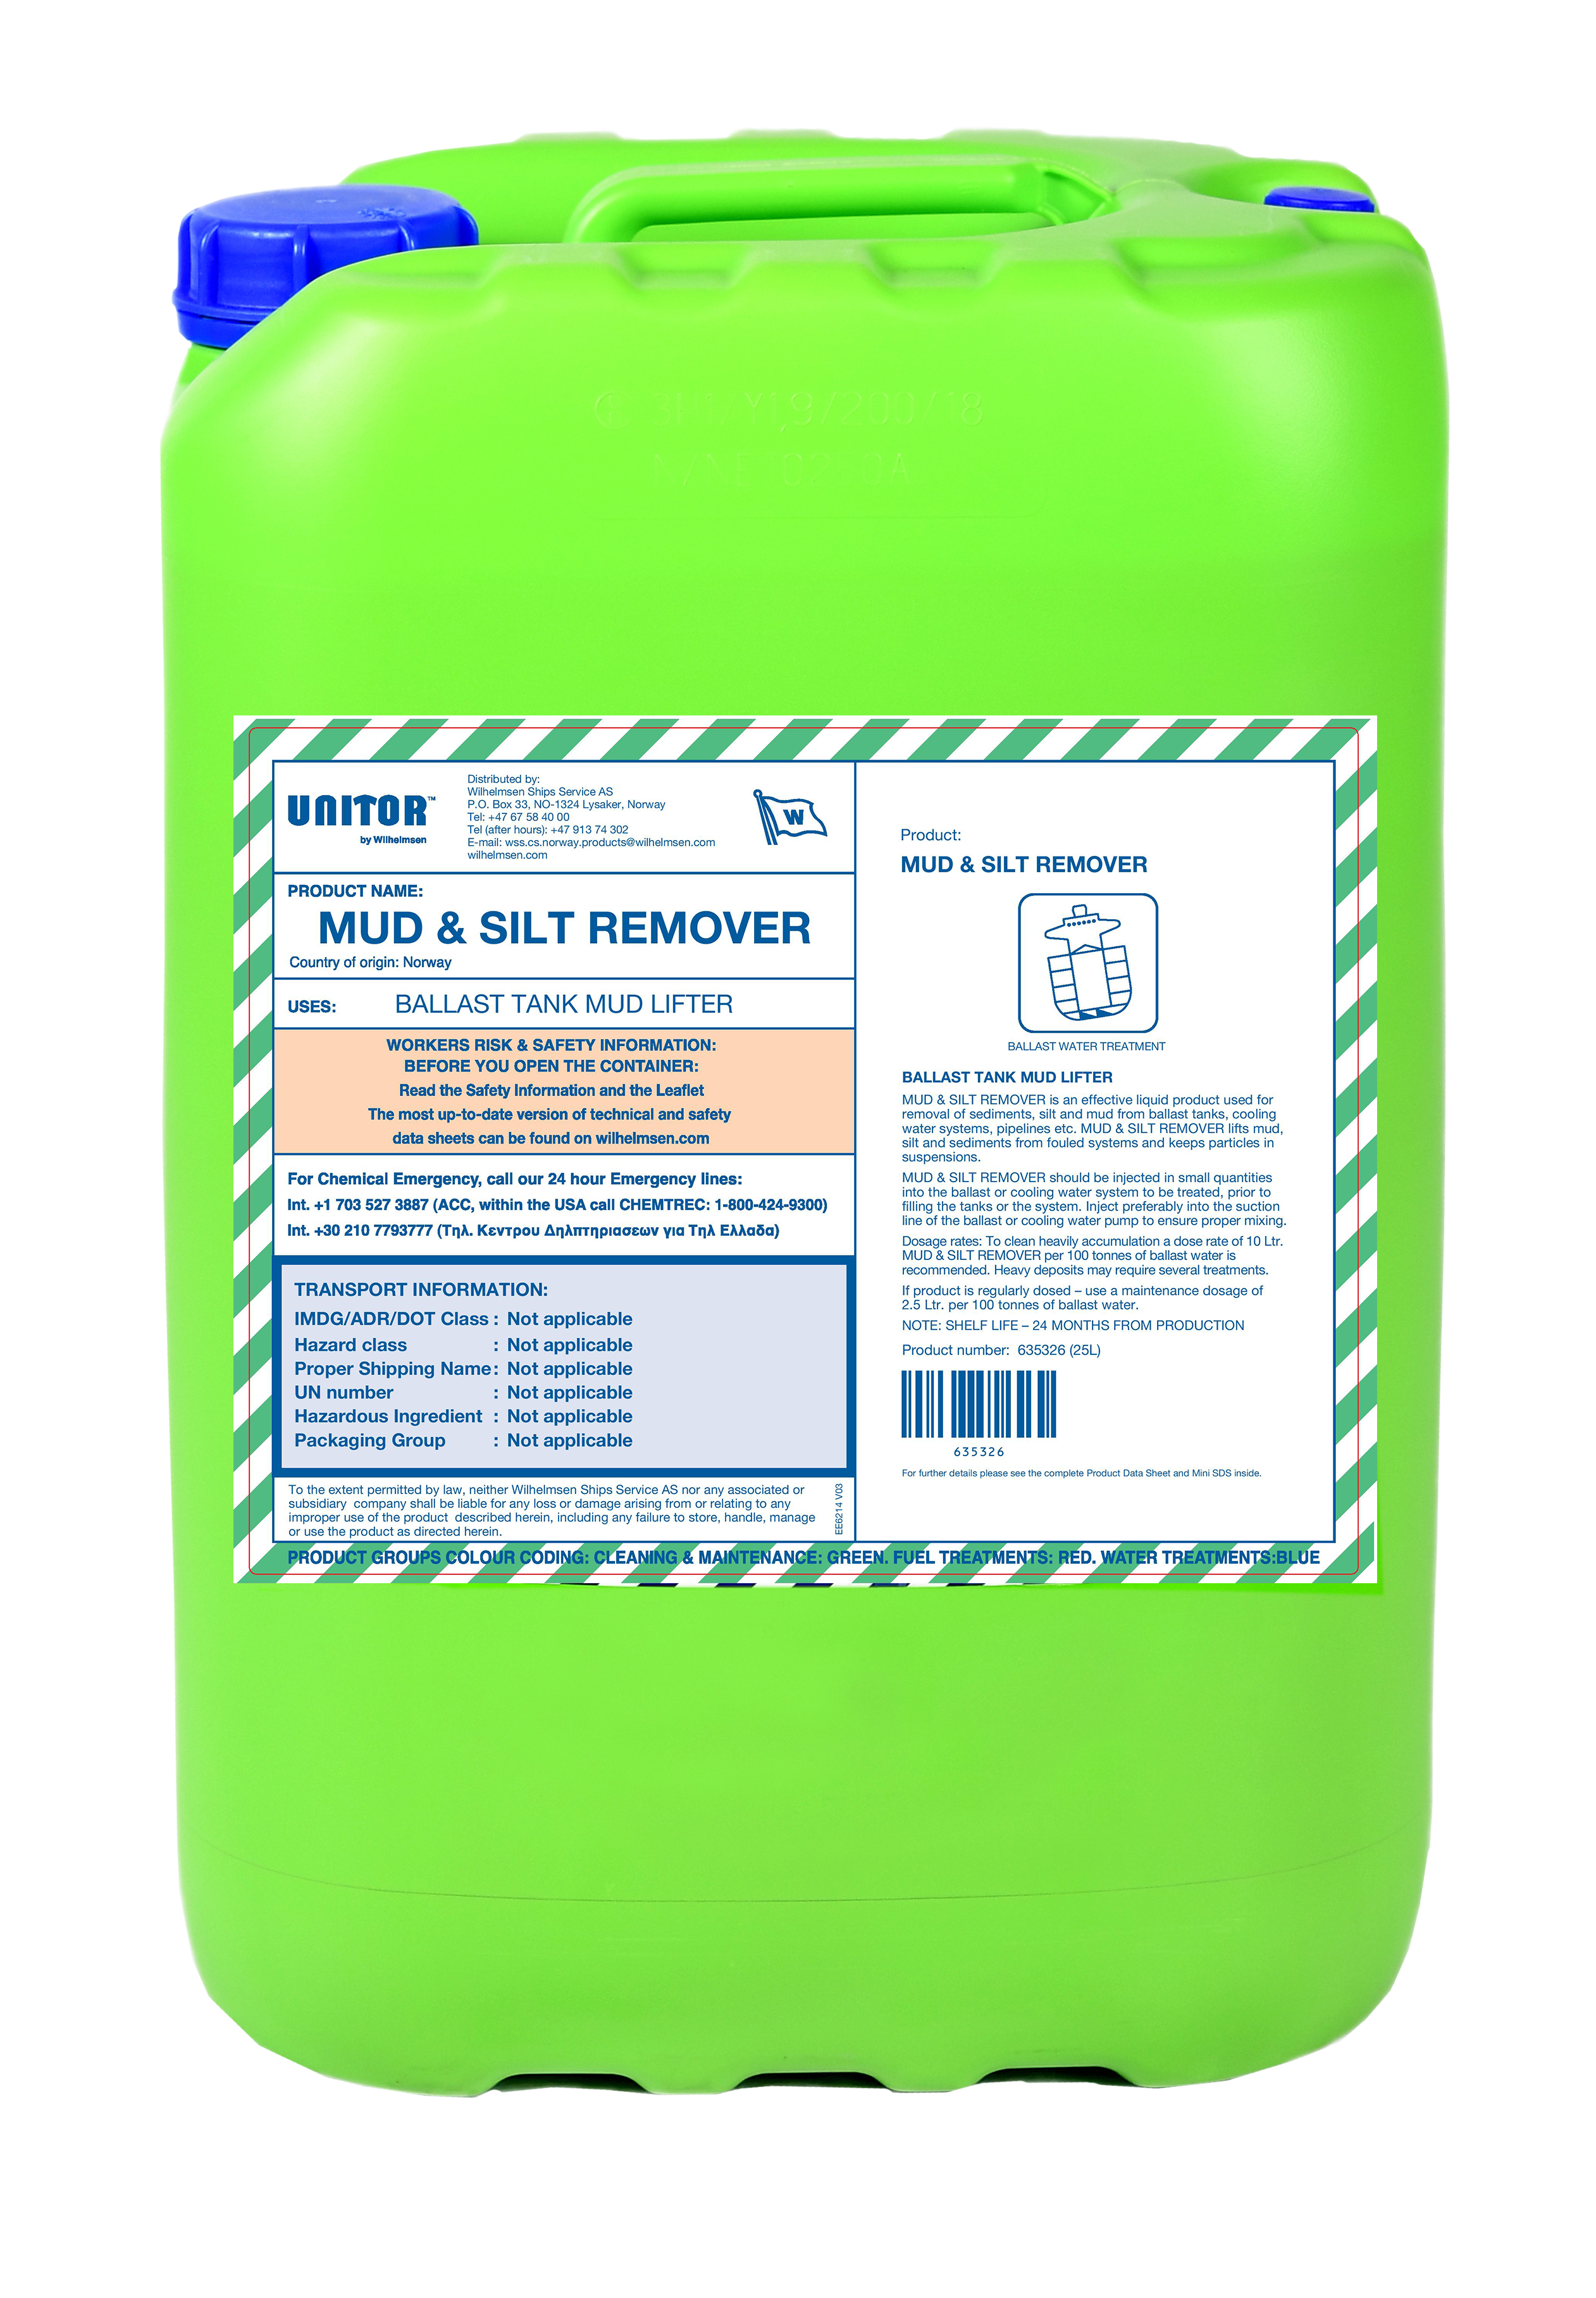 MUD & SILT REMOVER 25 LTR product image